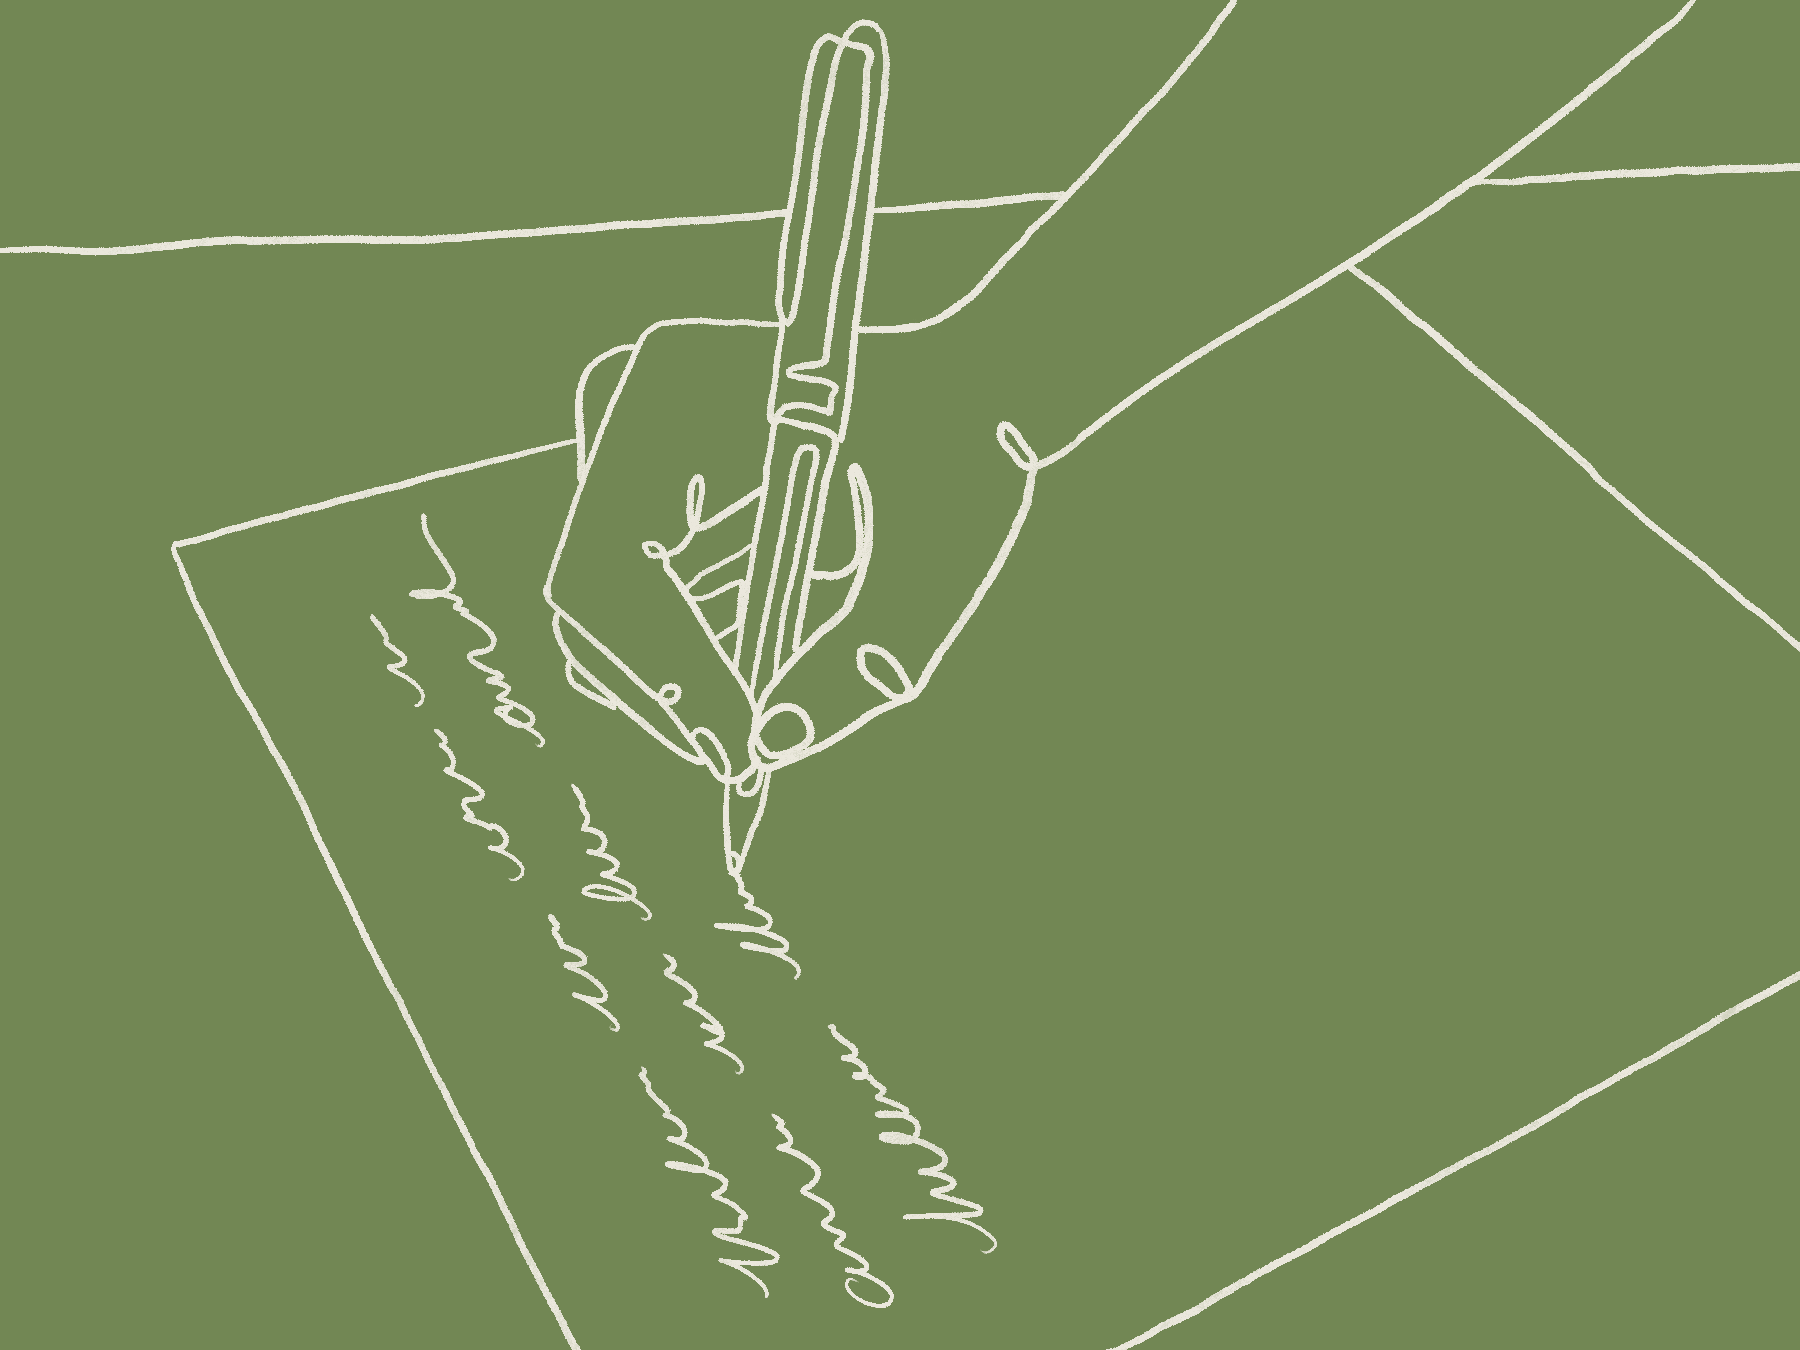 An illustration in white lines on a green background. It shows a hand writing on a piece of paper.